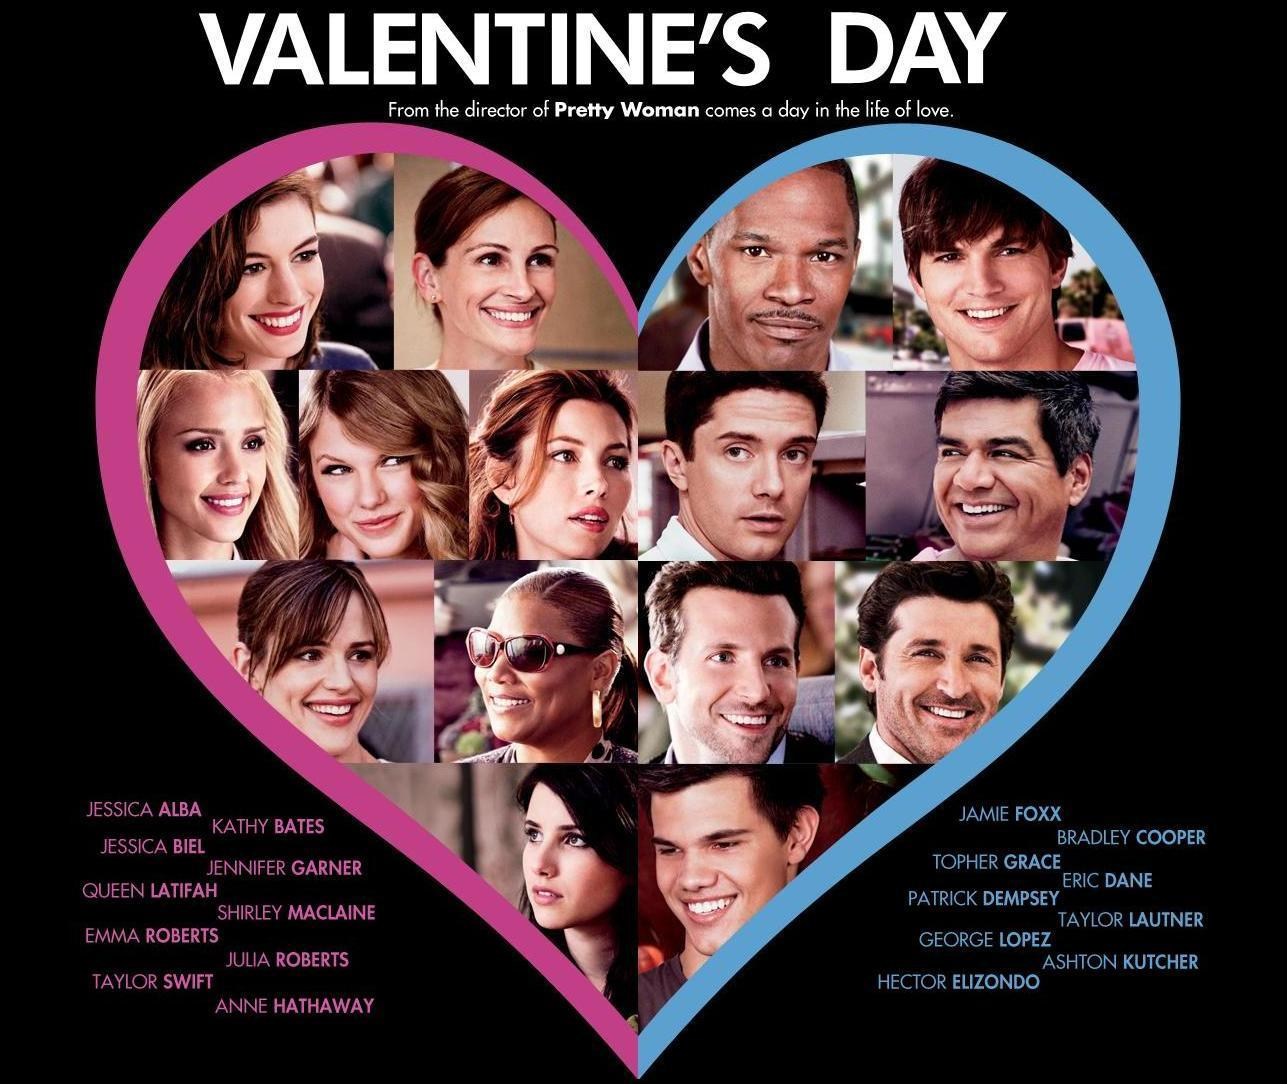 Valentines Day Movie Wallpaper 11150 Hd Wallpapers